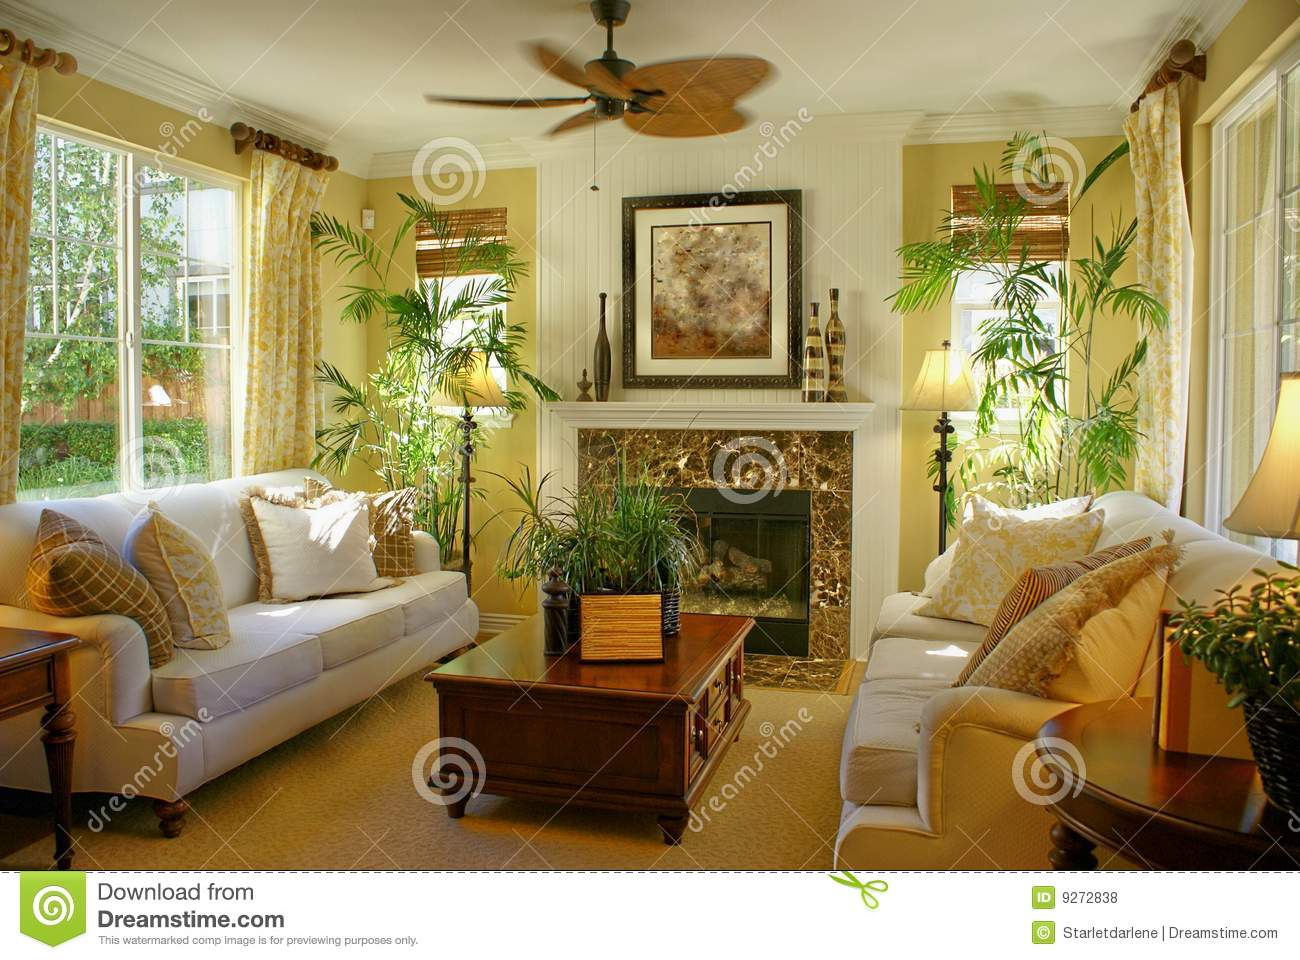 Sunny yellow living room w fan stock photo image 9272838 for Yellow living room decorating ideas